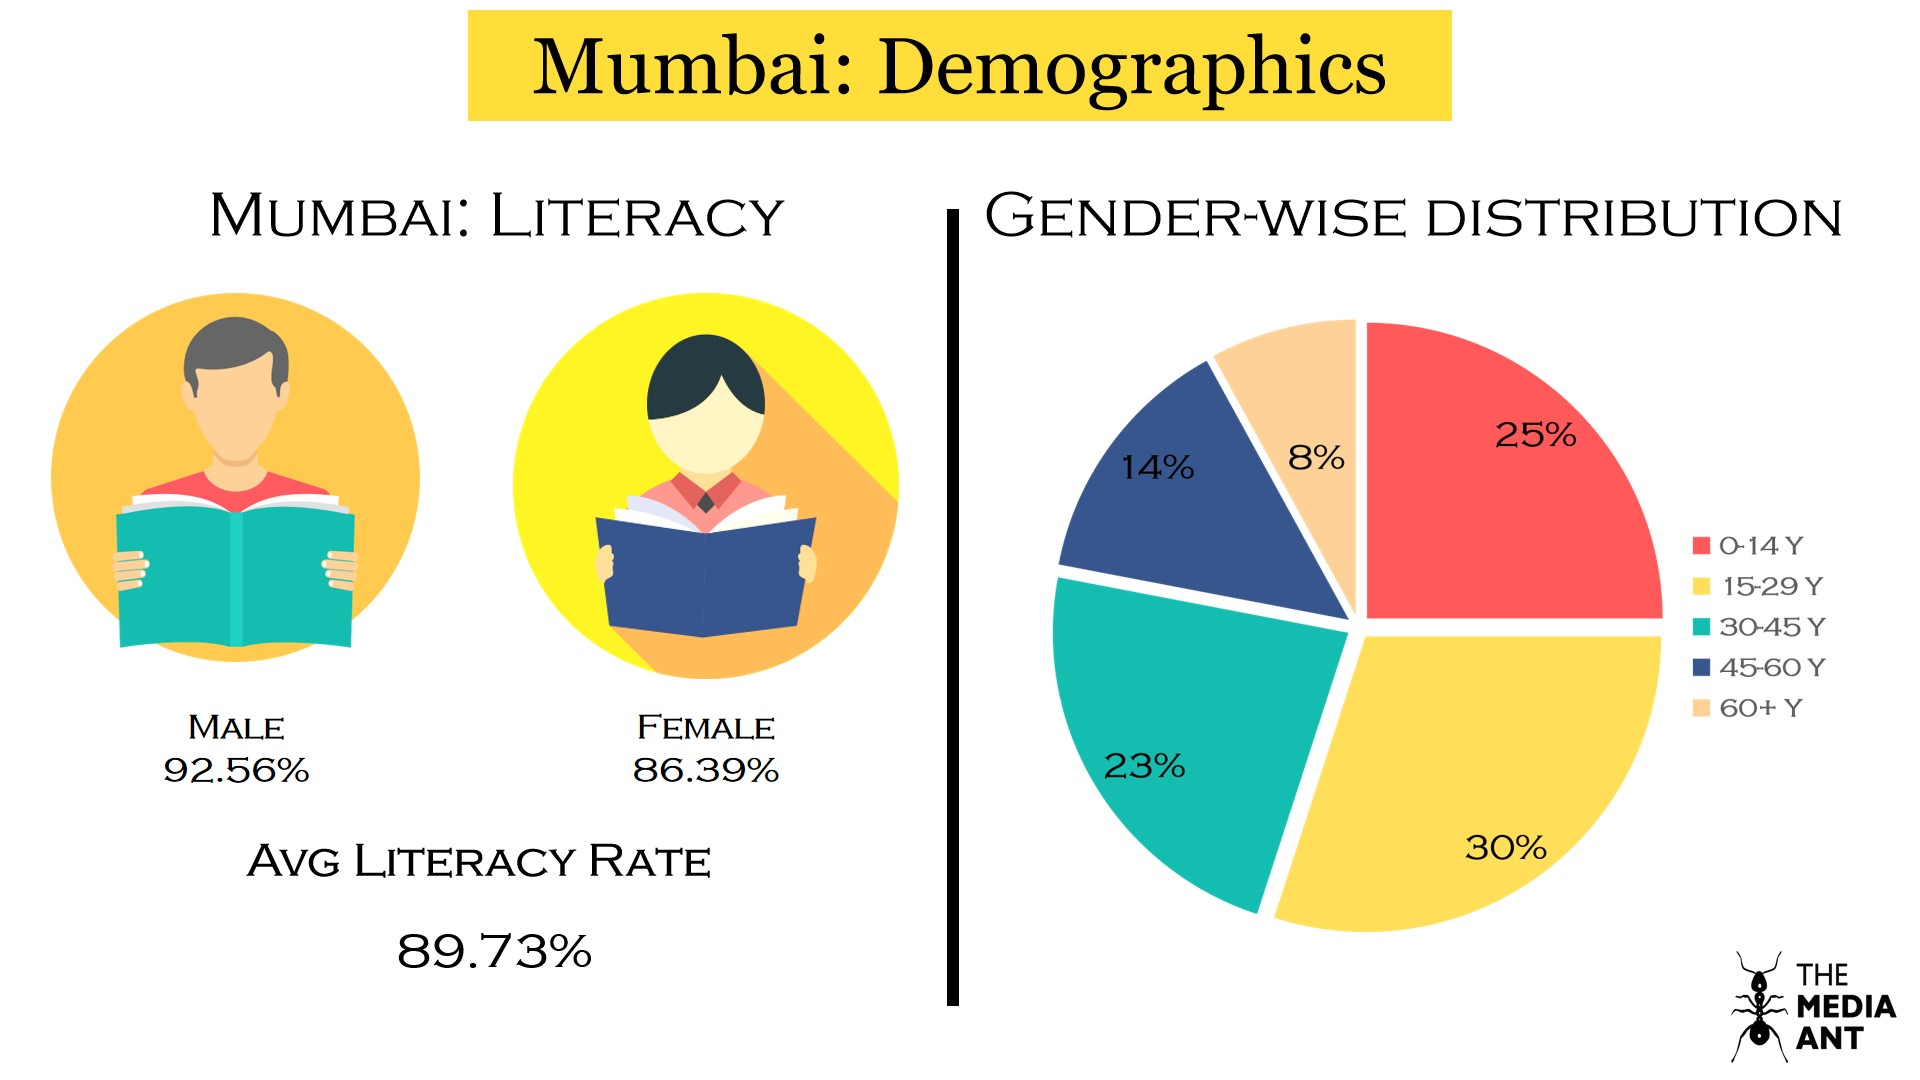 Mumbai literacy rate and gender-wise population distribution